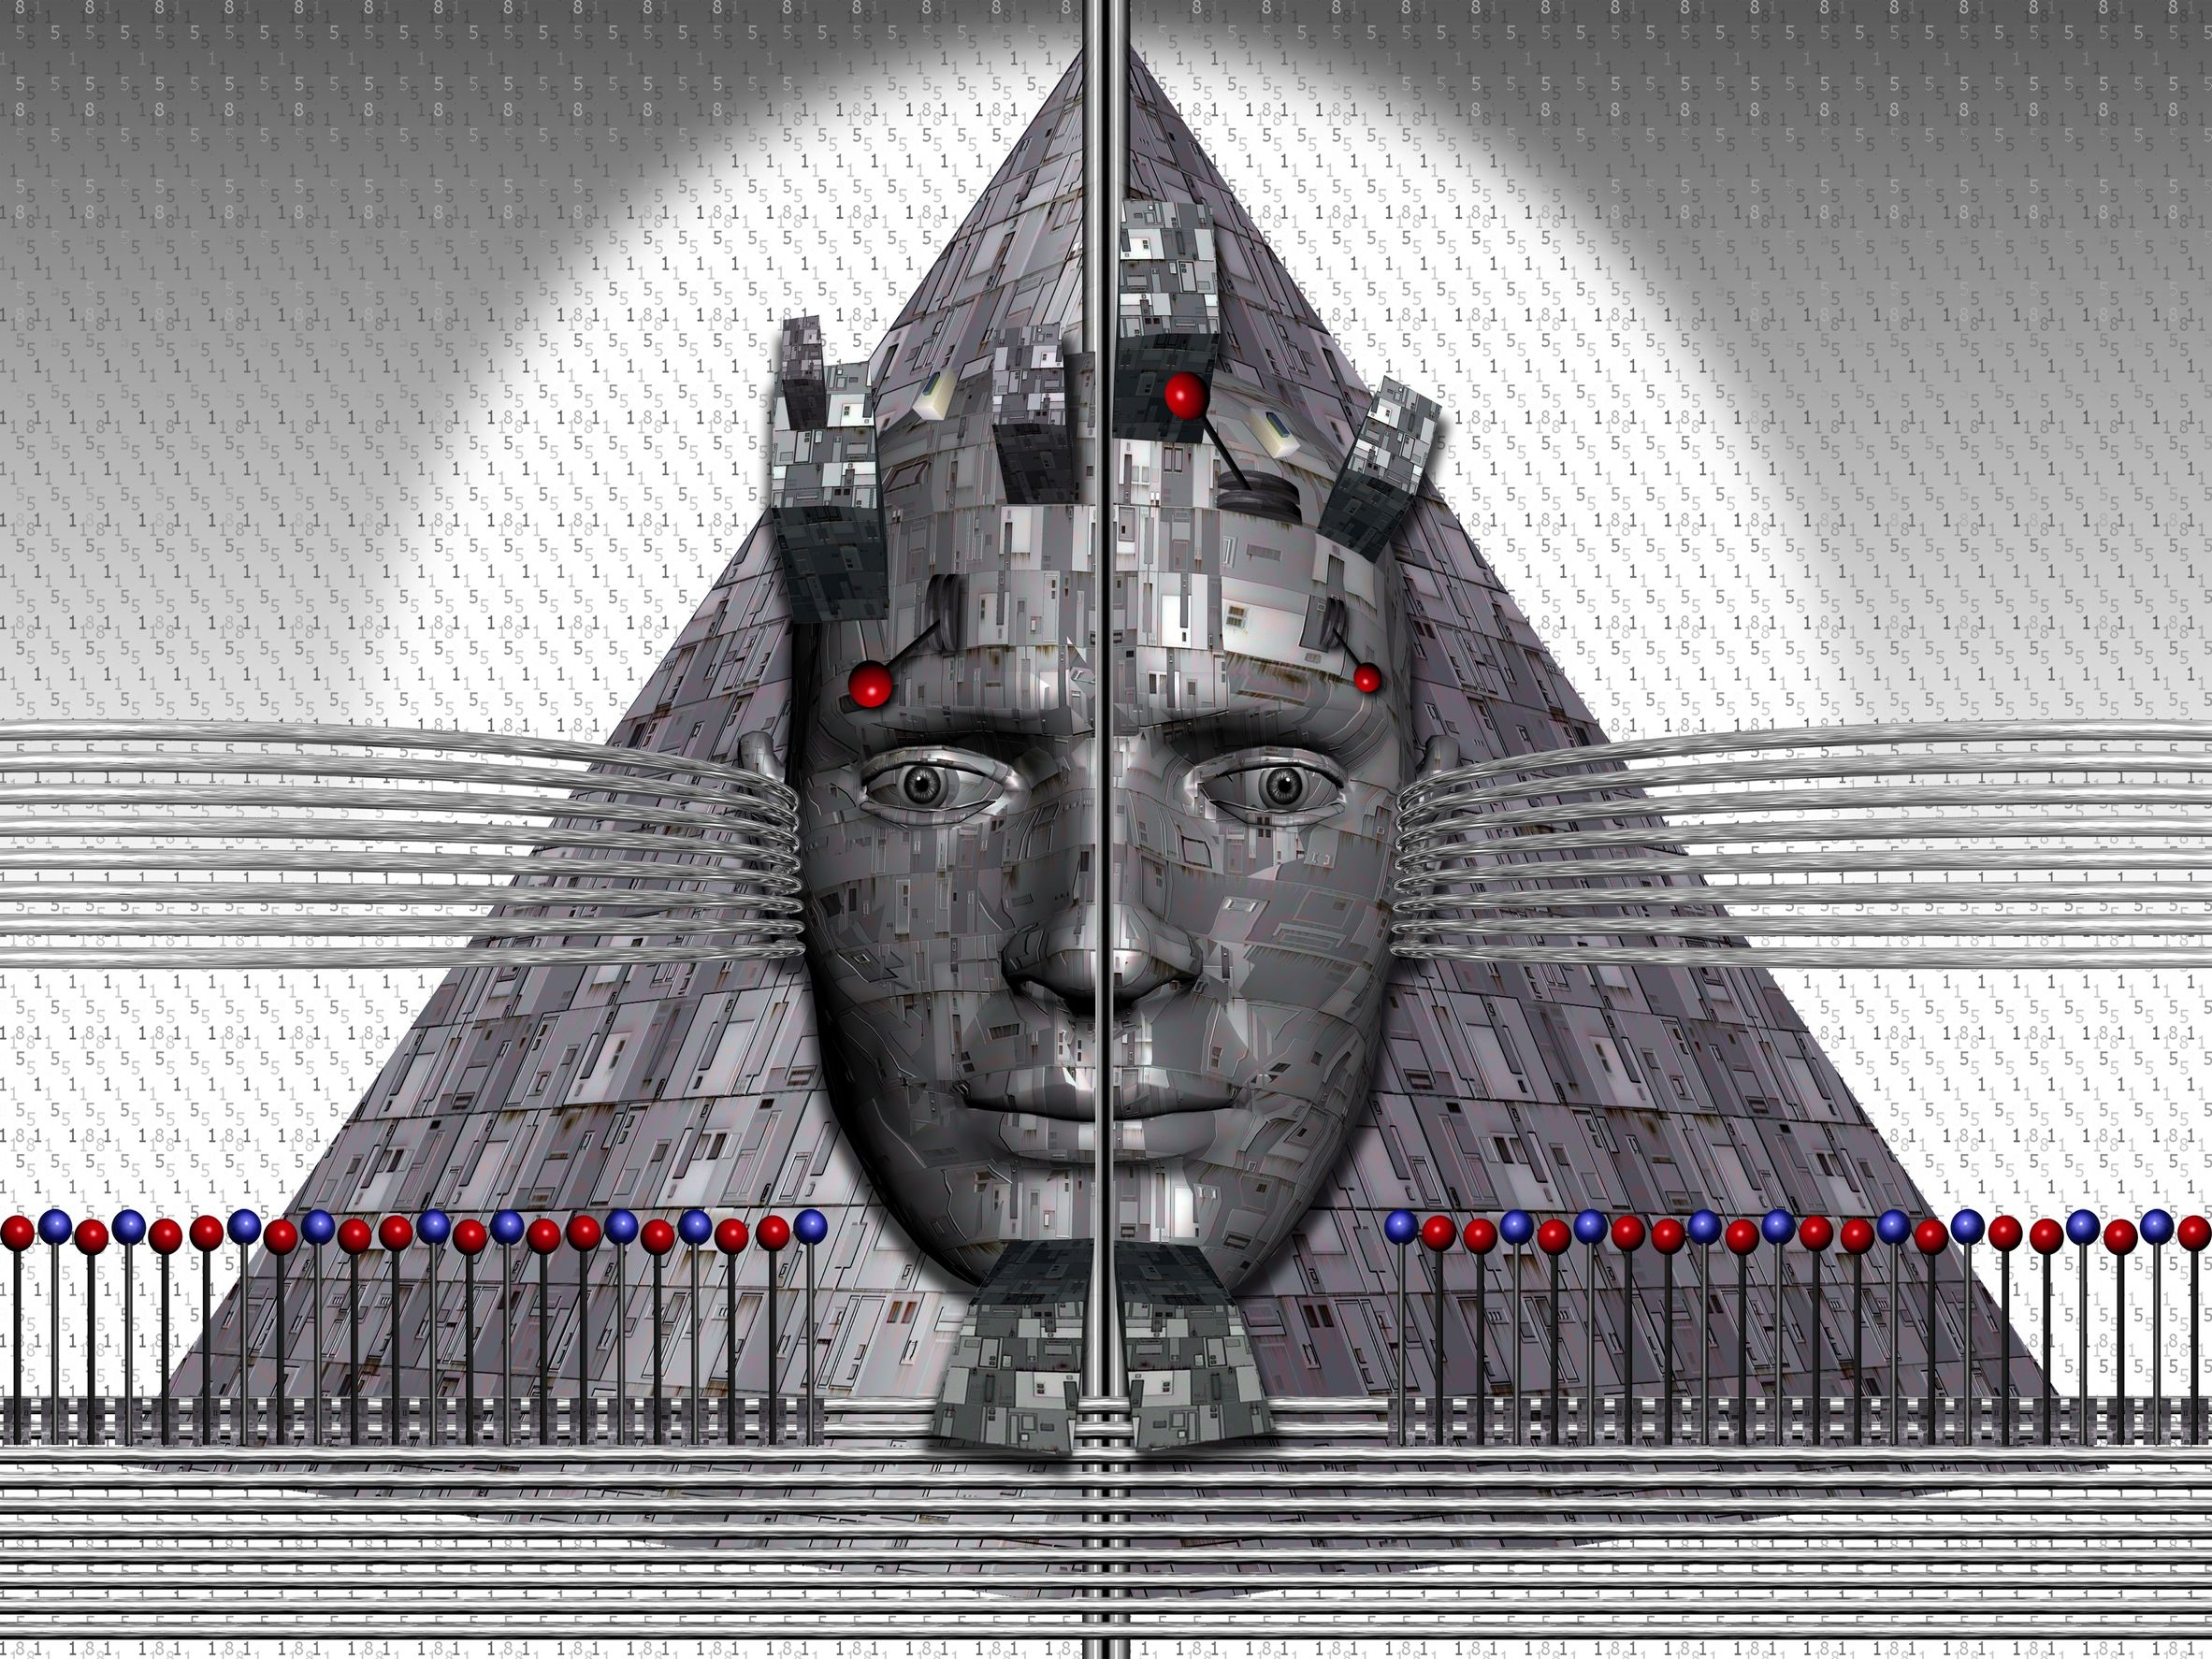 The Mystery Of The Pyramid